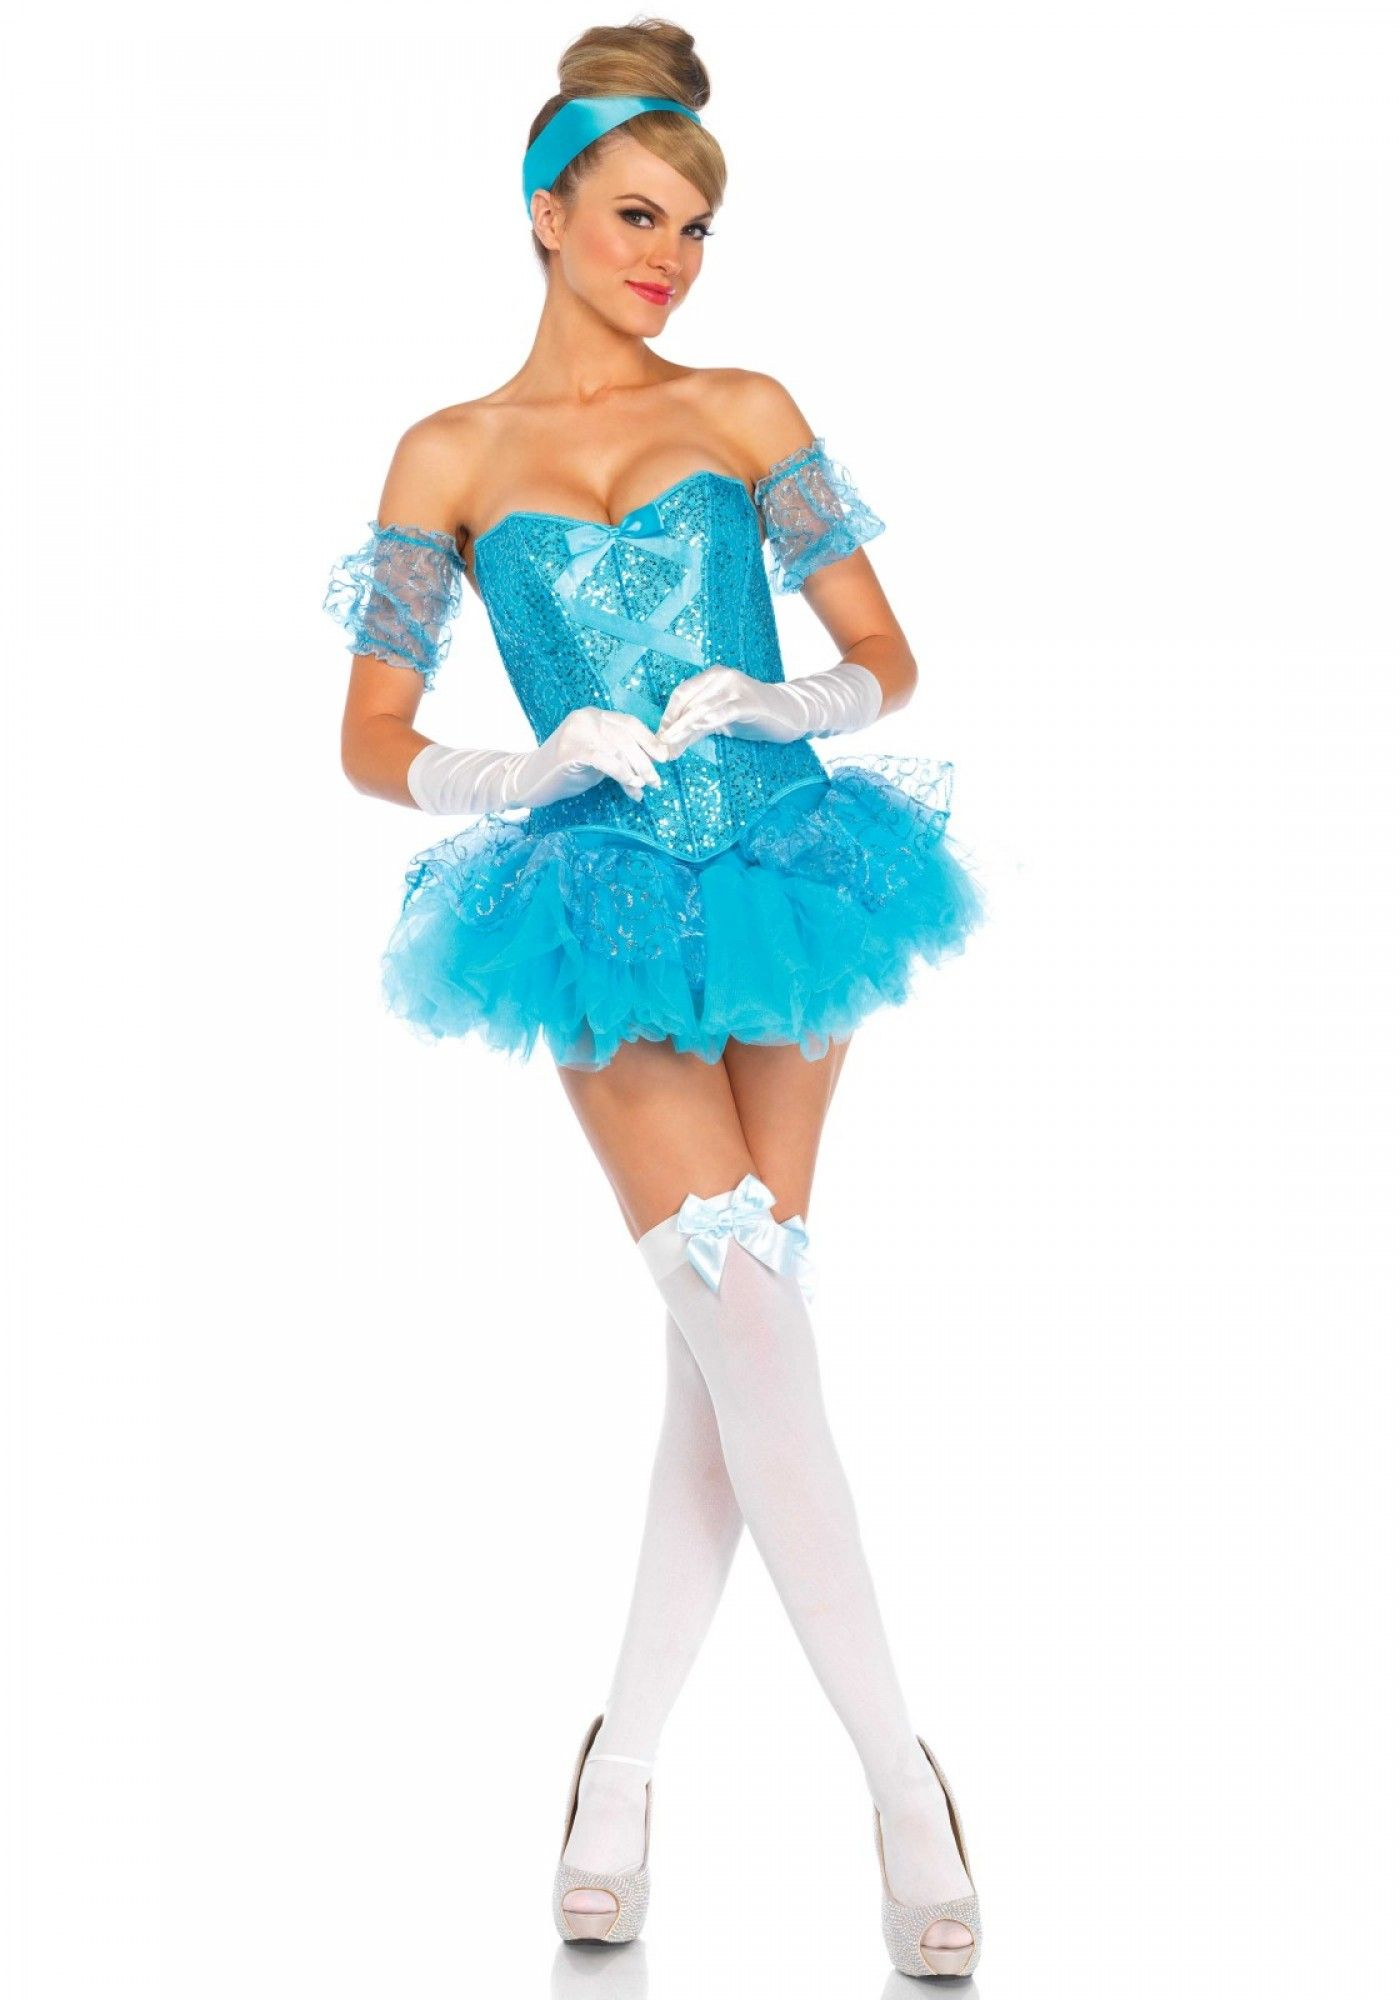 Leg Avenue 85025 Cinderella Costume Princess Dress Up #Halloween #Fairytale  sc 1 st  Pinterest & Leg Avenue 85025 Cinderella Costume Princess Dress Up #Halloween ...